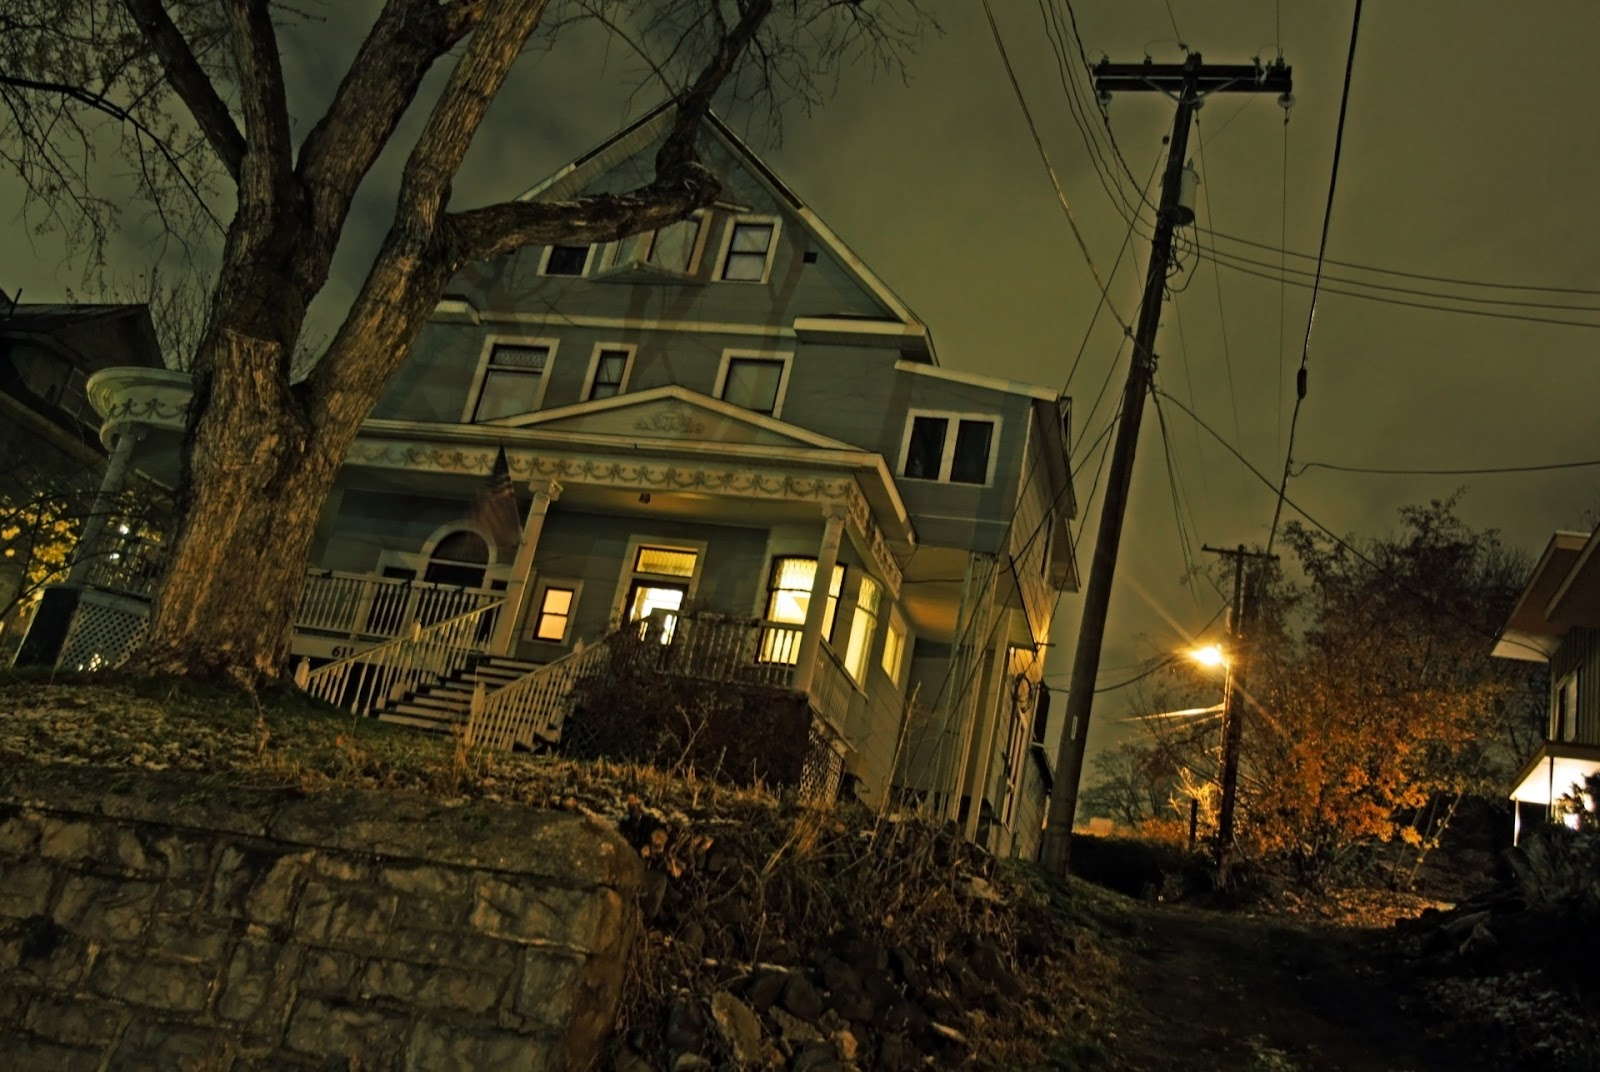 haunted-house-on-hill.jpg